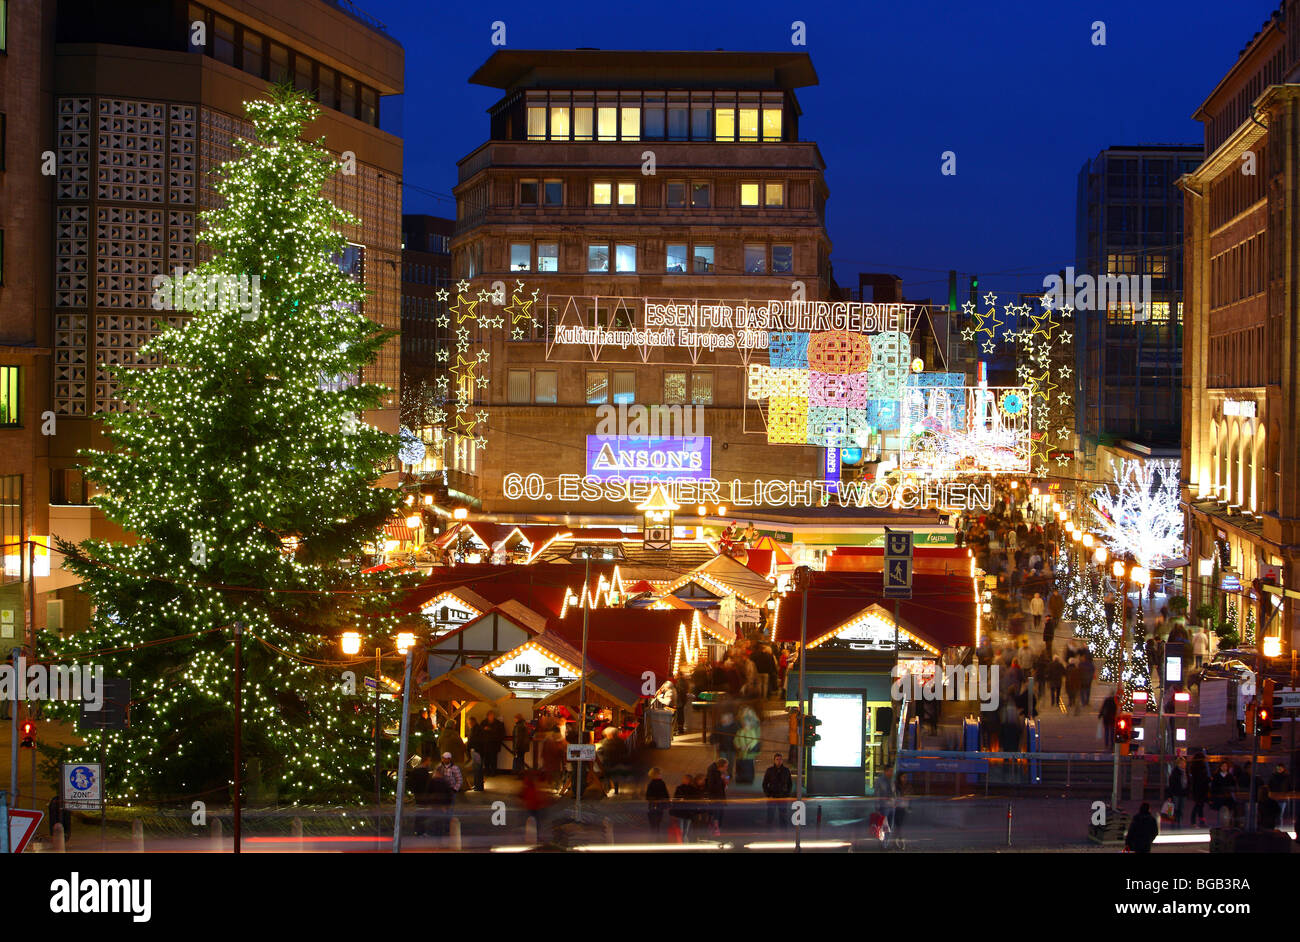 Christmas market in the inner-city of Essen, Kennedy Place, NRW, Germany, Europe. - Stock Image